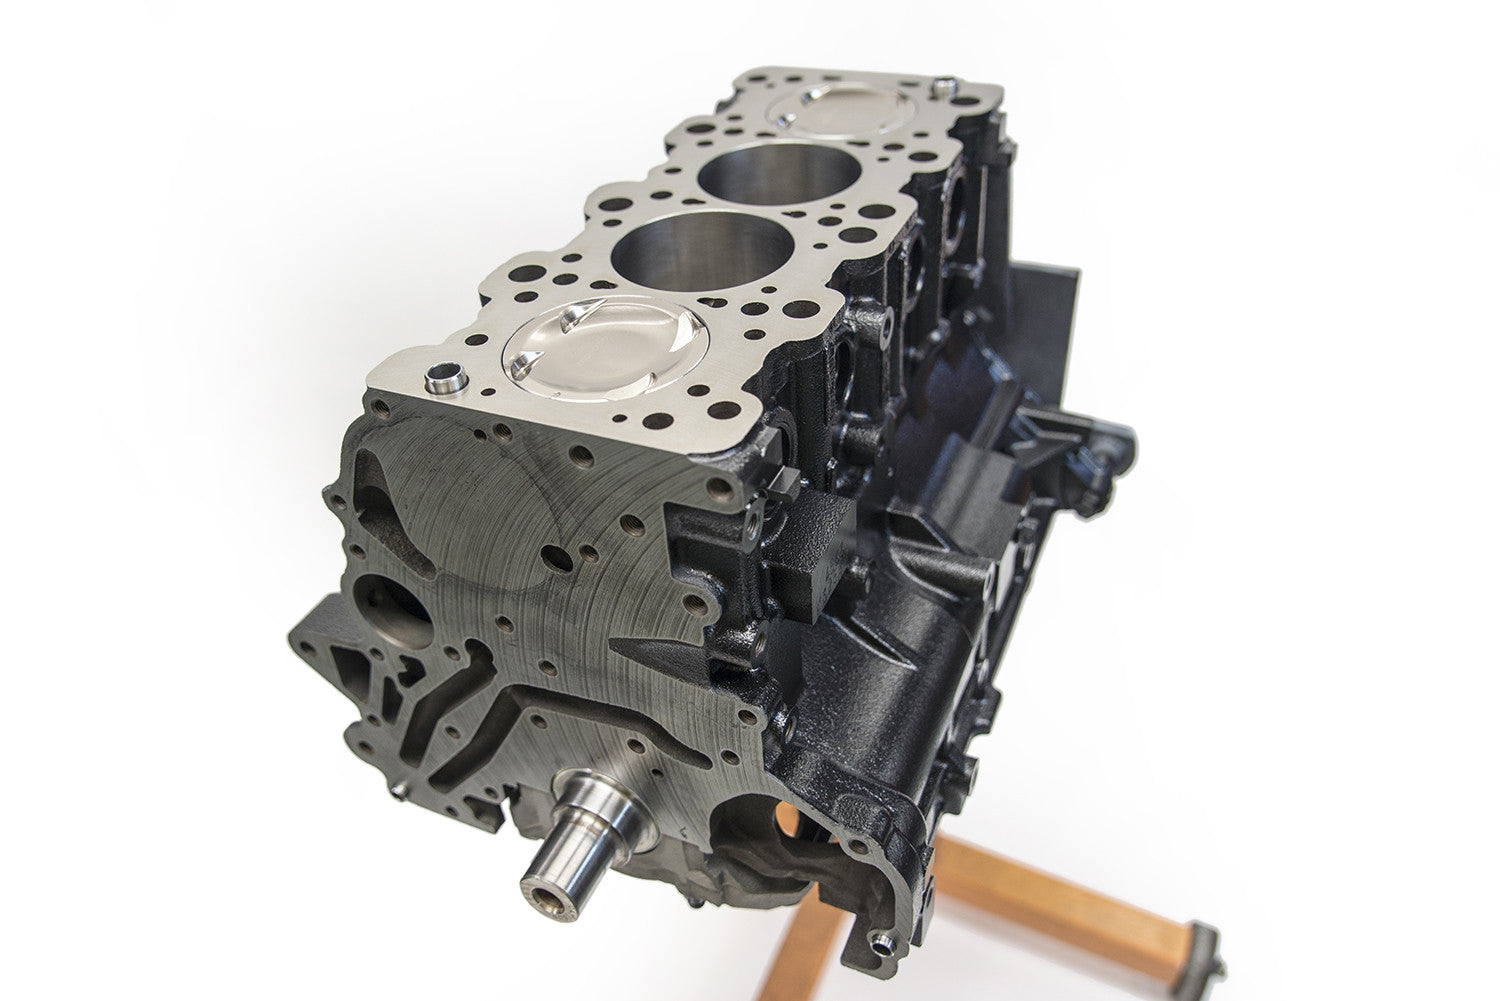 Engine Rebuild Cost >> Evo X Engine 4b11t Race Engine Rebuild Cost Maperformance